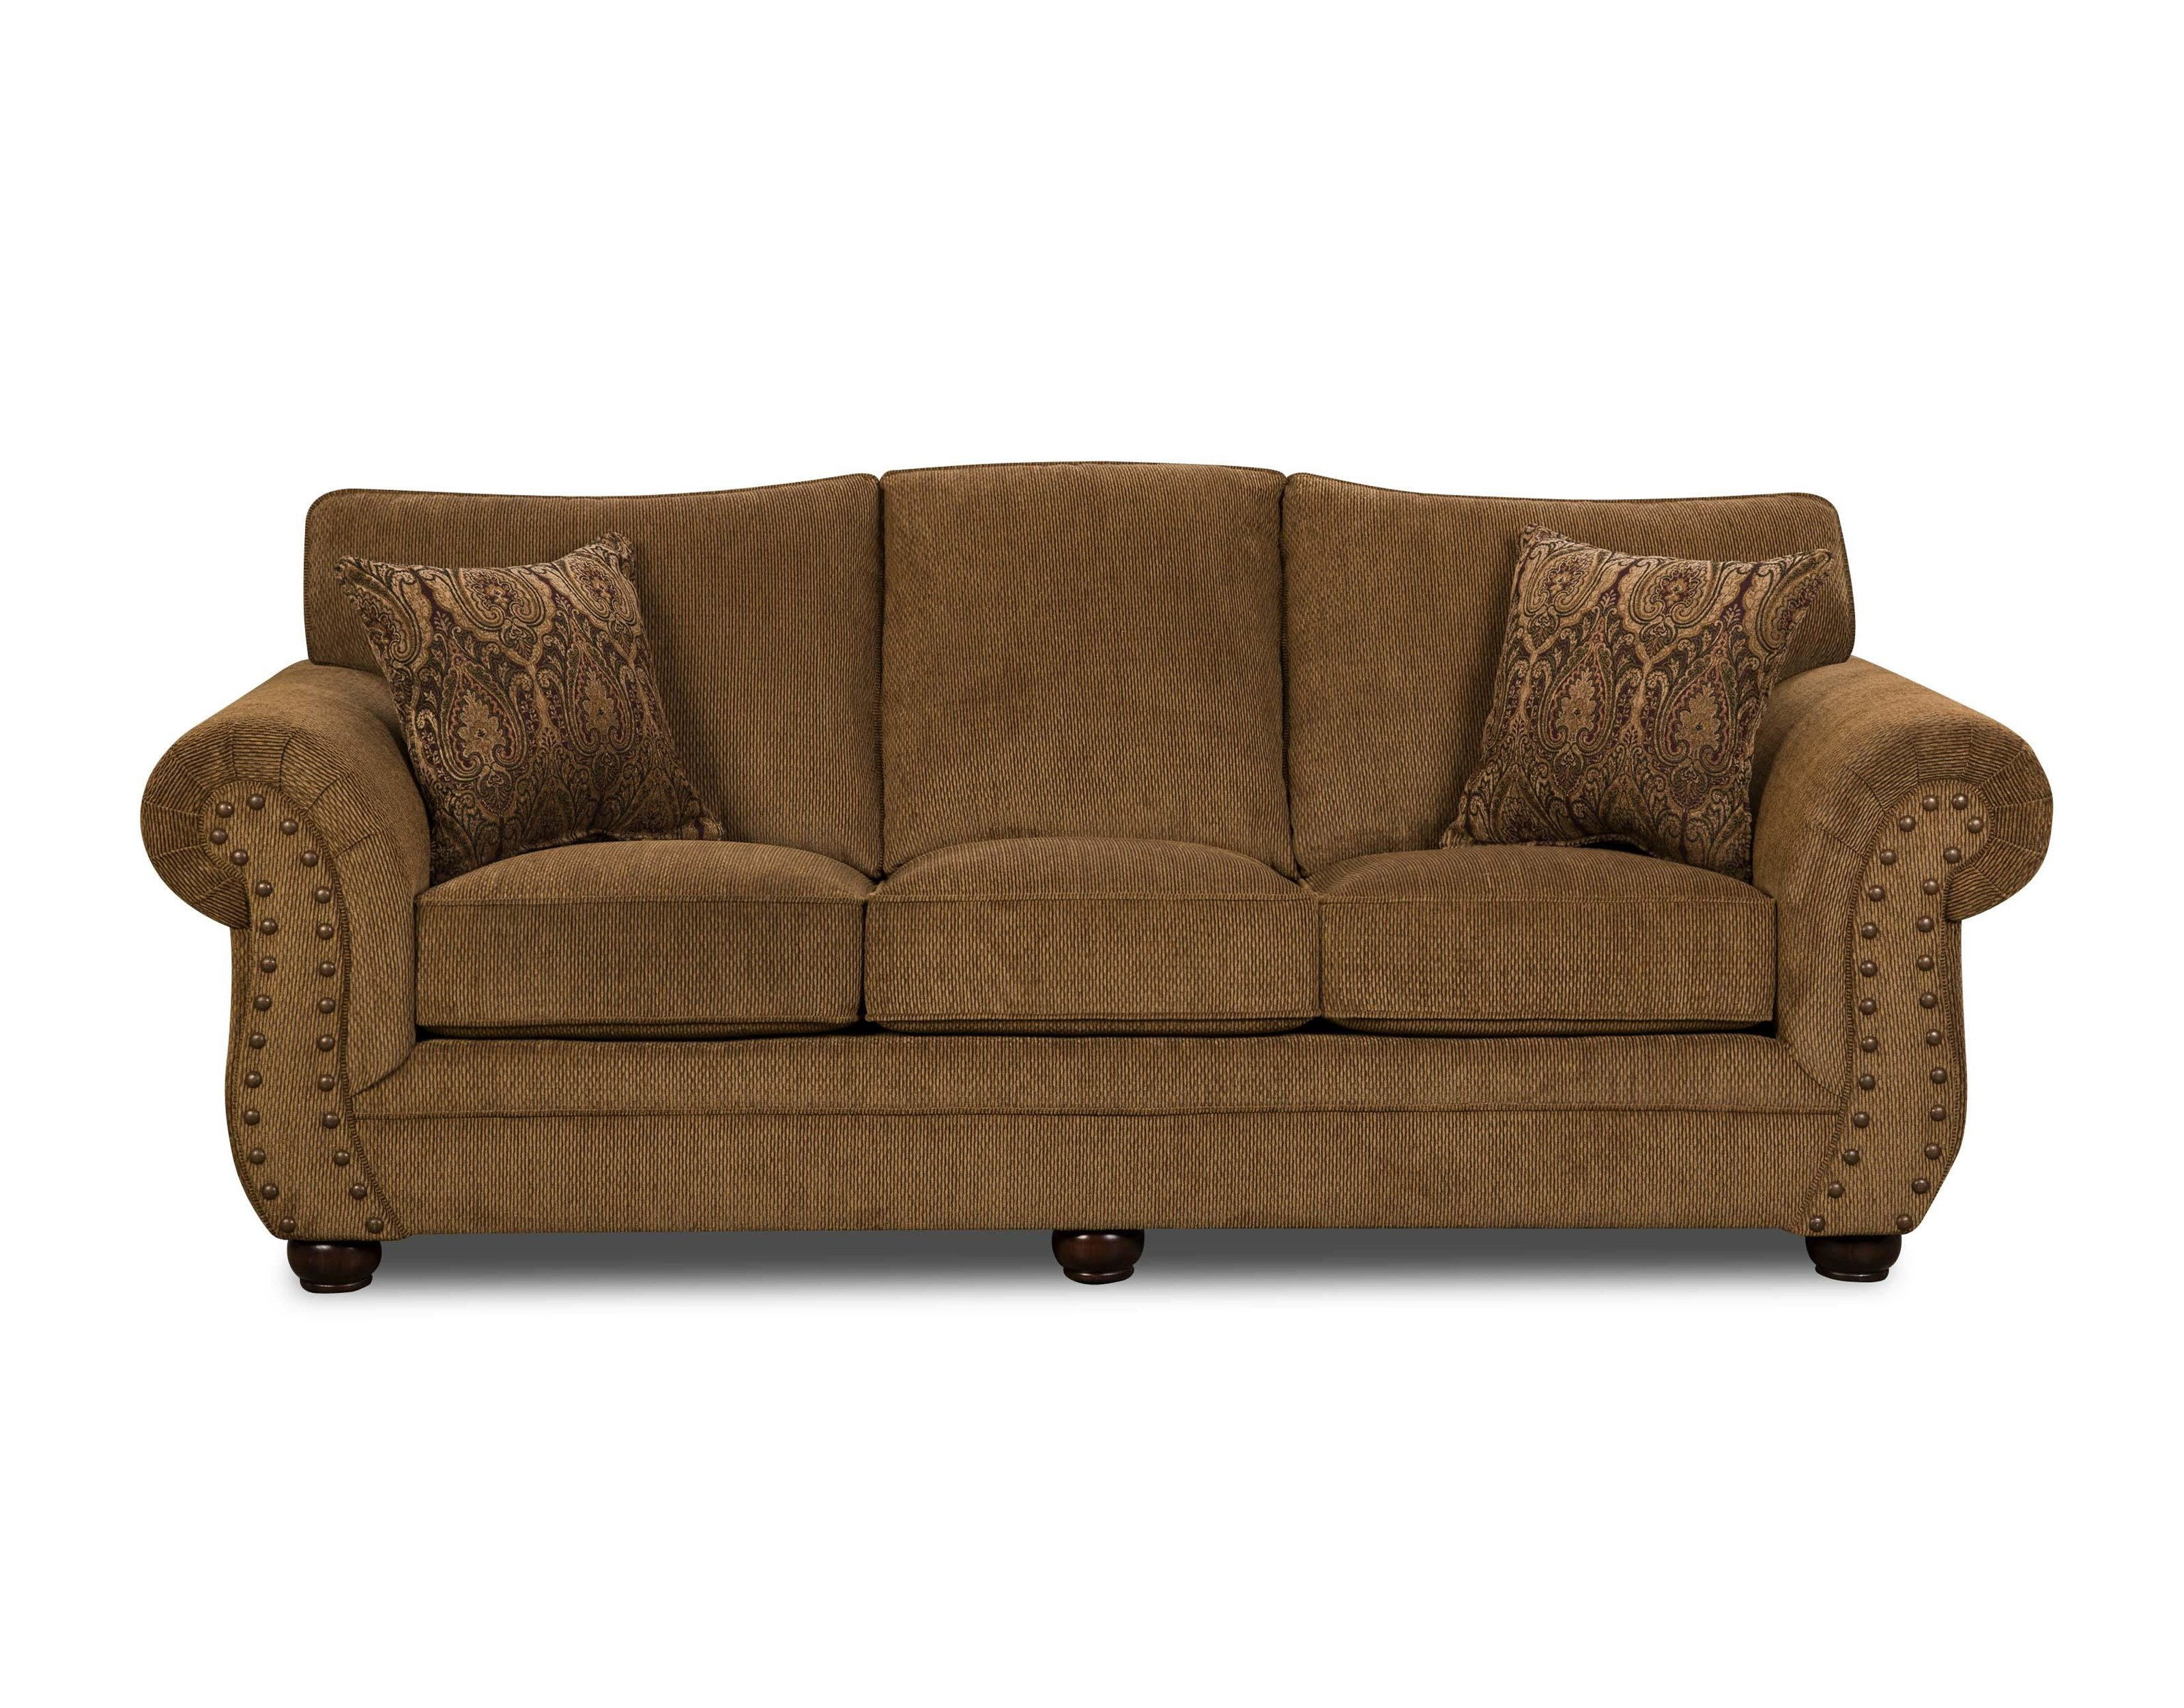 Simmons Upholstery 4276 Traditional Sofa with Rolled Arms - Item Number: 4276S